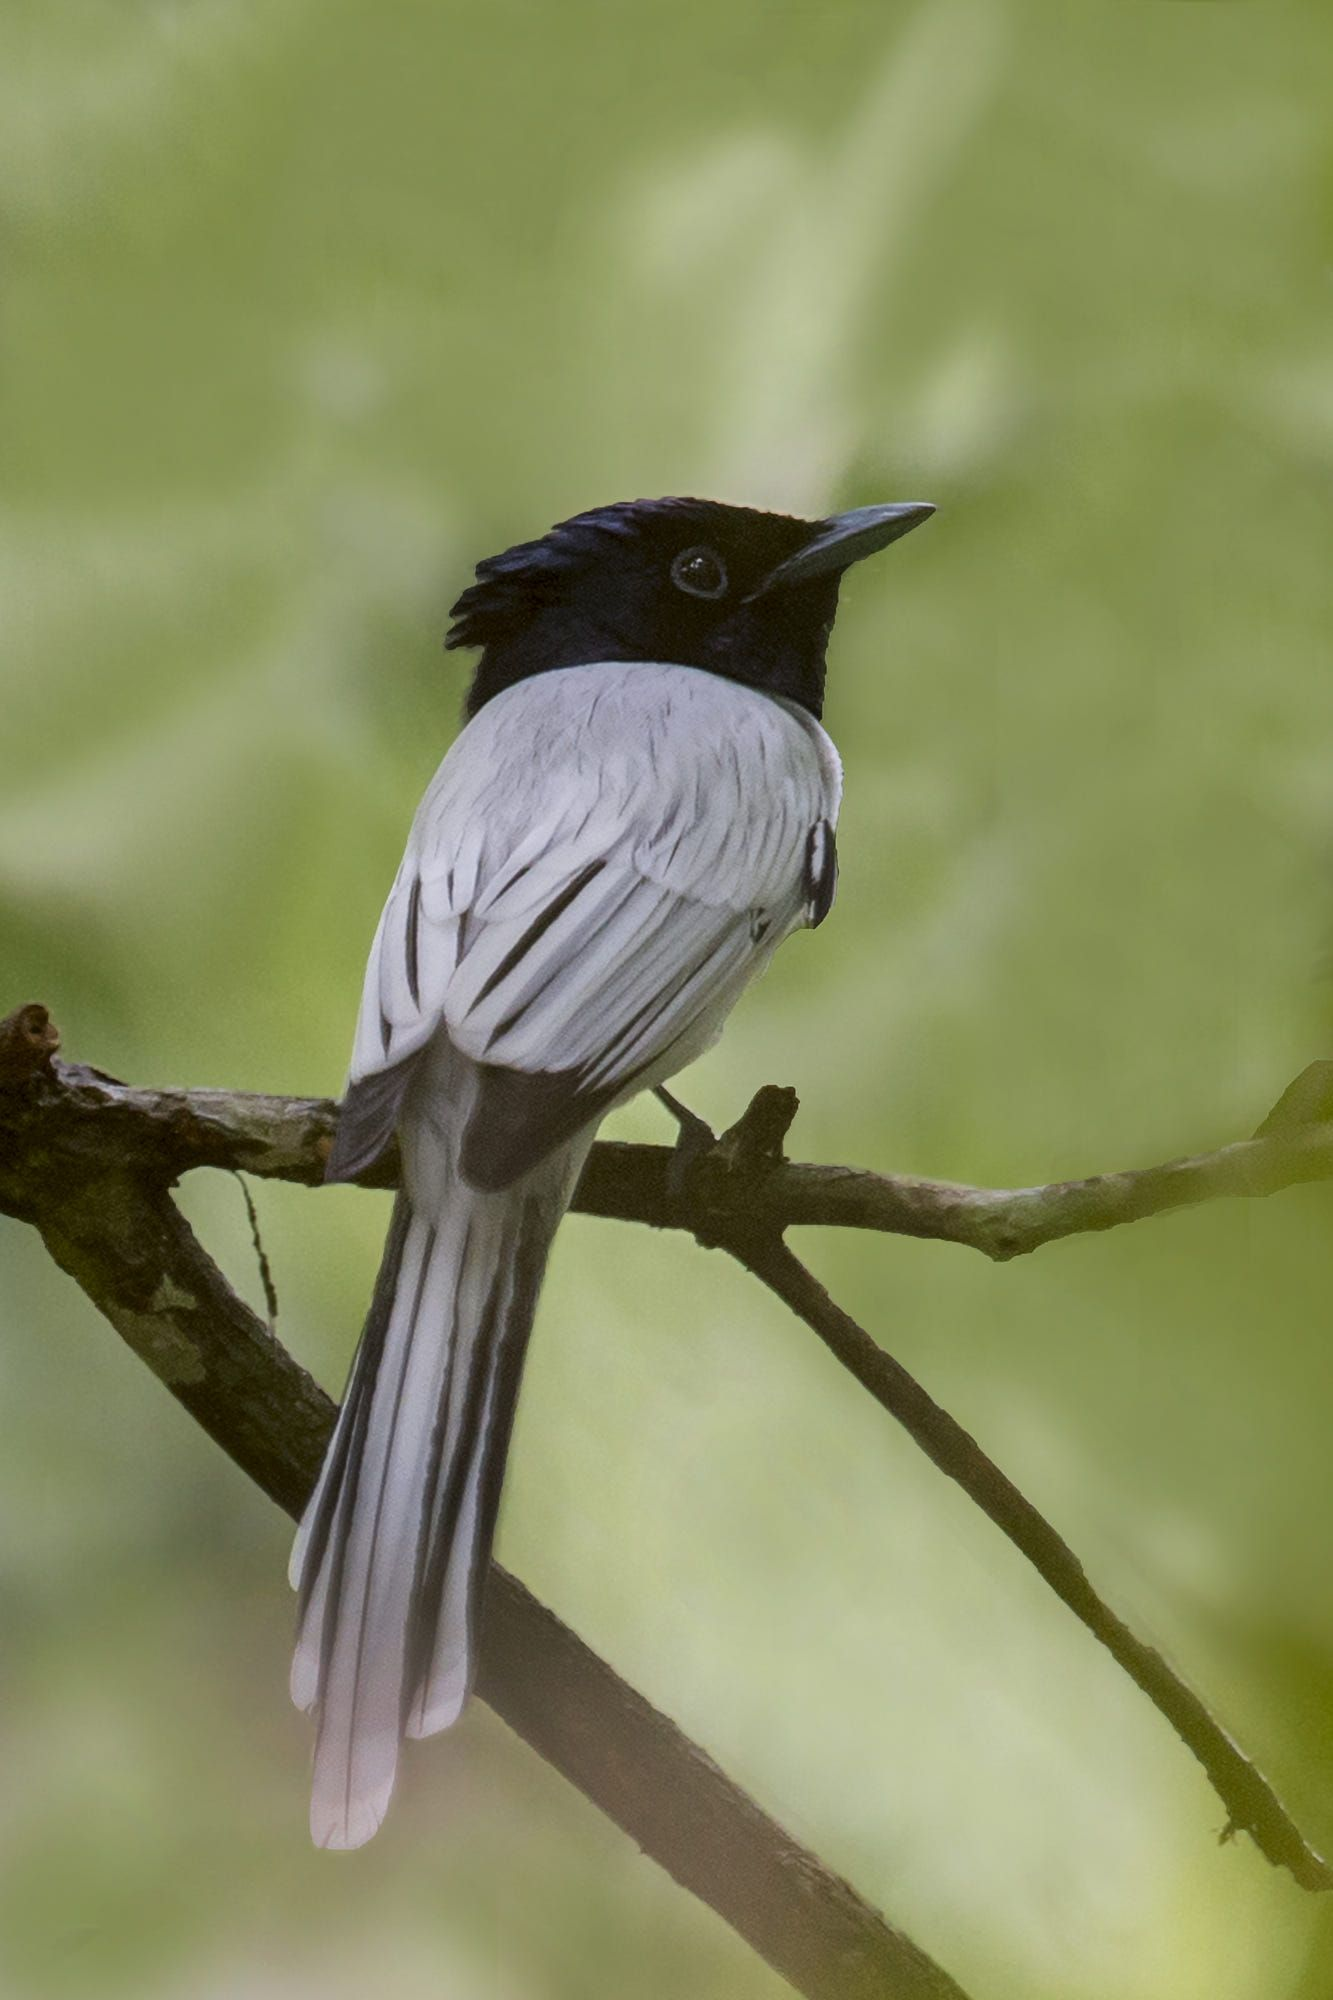 Asian paradise flycatchers, (Terpsiphone), are a genus of